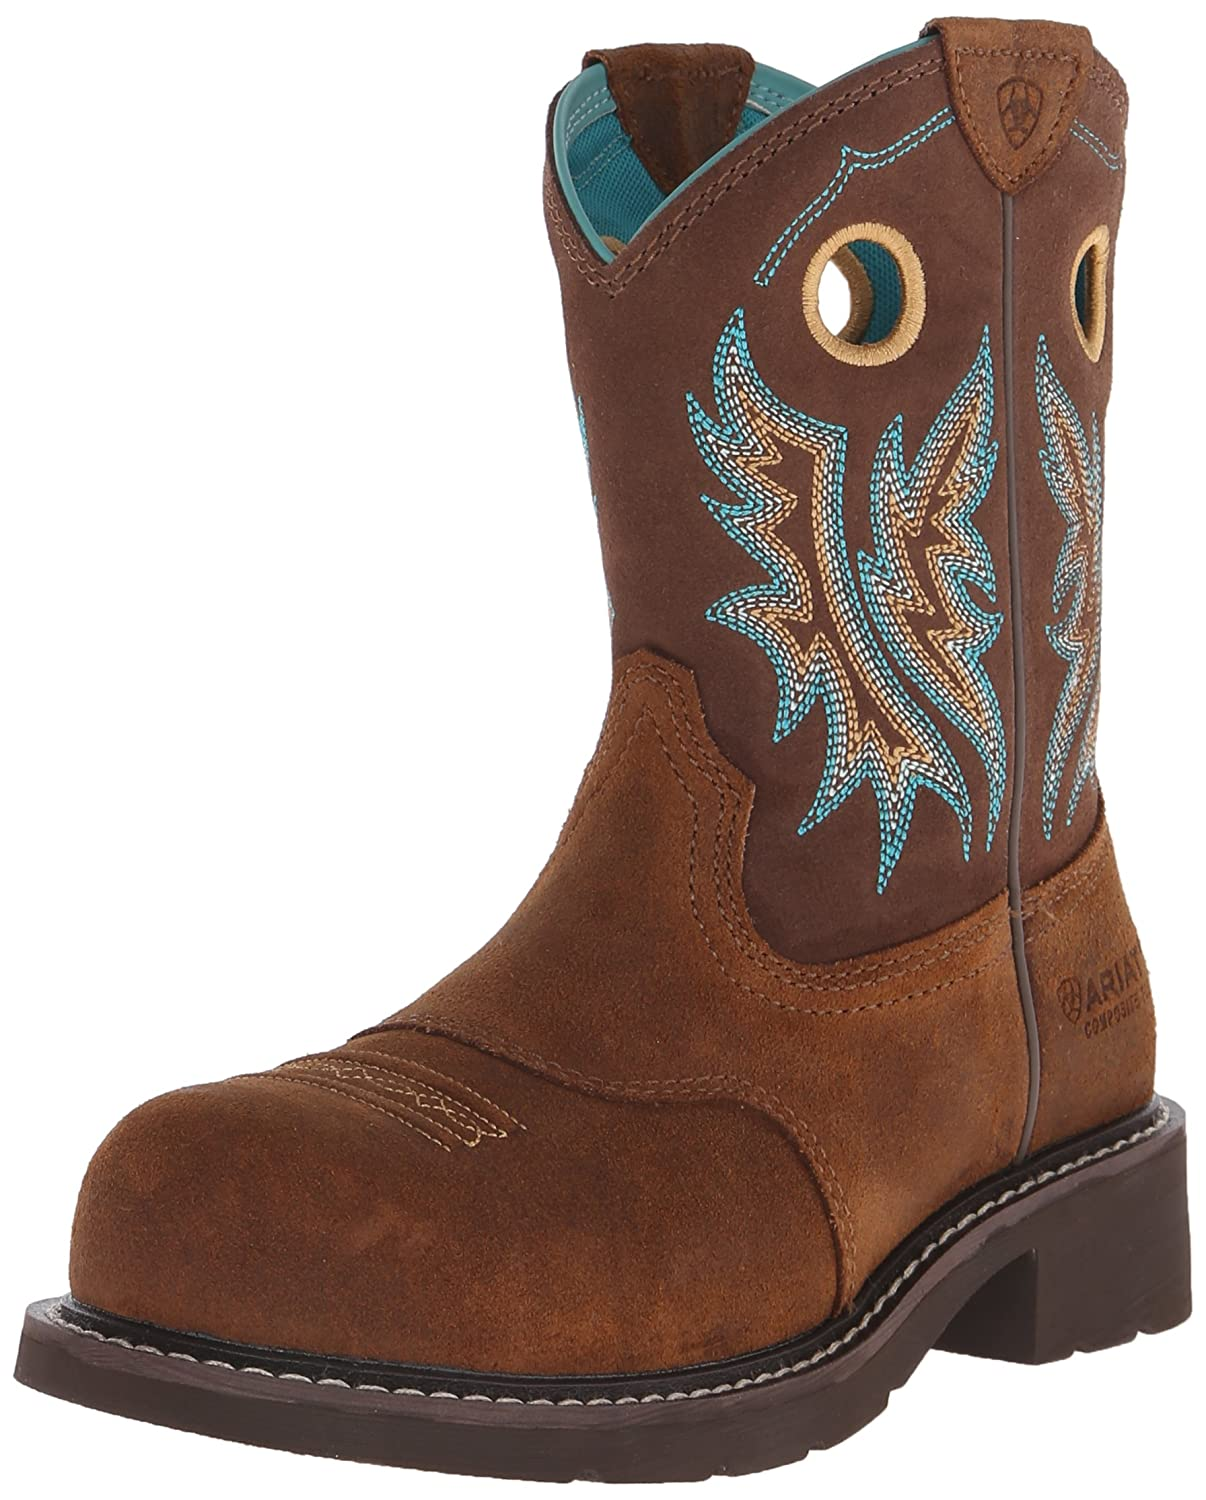 Ariat Women's Fatbaby Cowgirl Composite Toe Work Boot B00U9Y7V04 7.5 B(M) US|Fireside/Tan